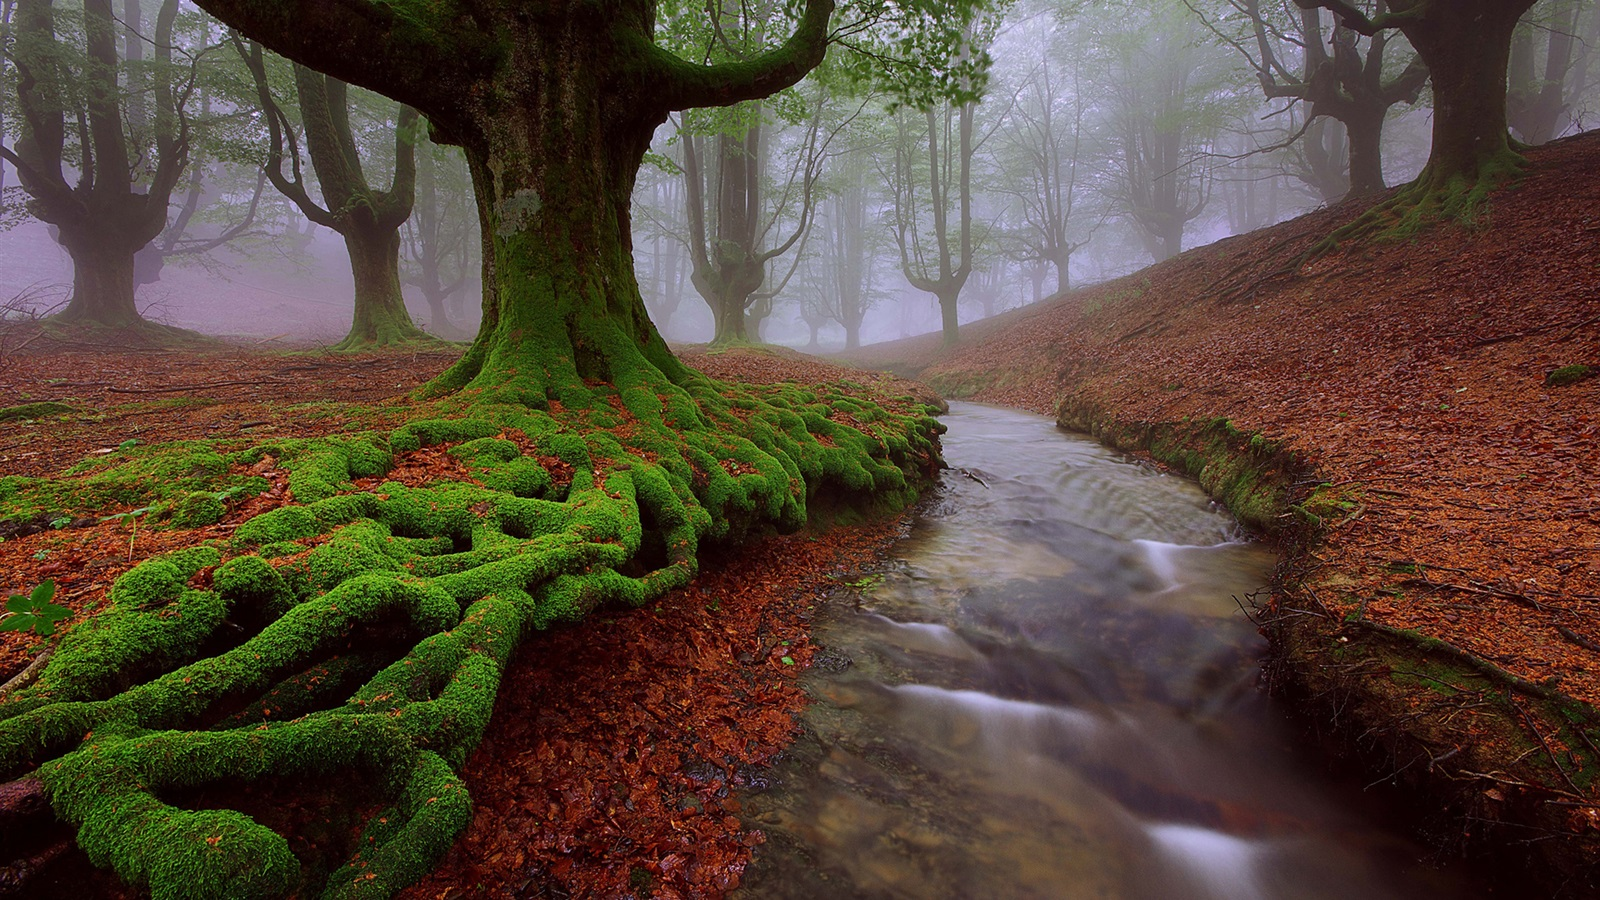 Download Wallpaper 1600x900 Spain Basque Country Trees